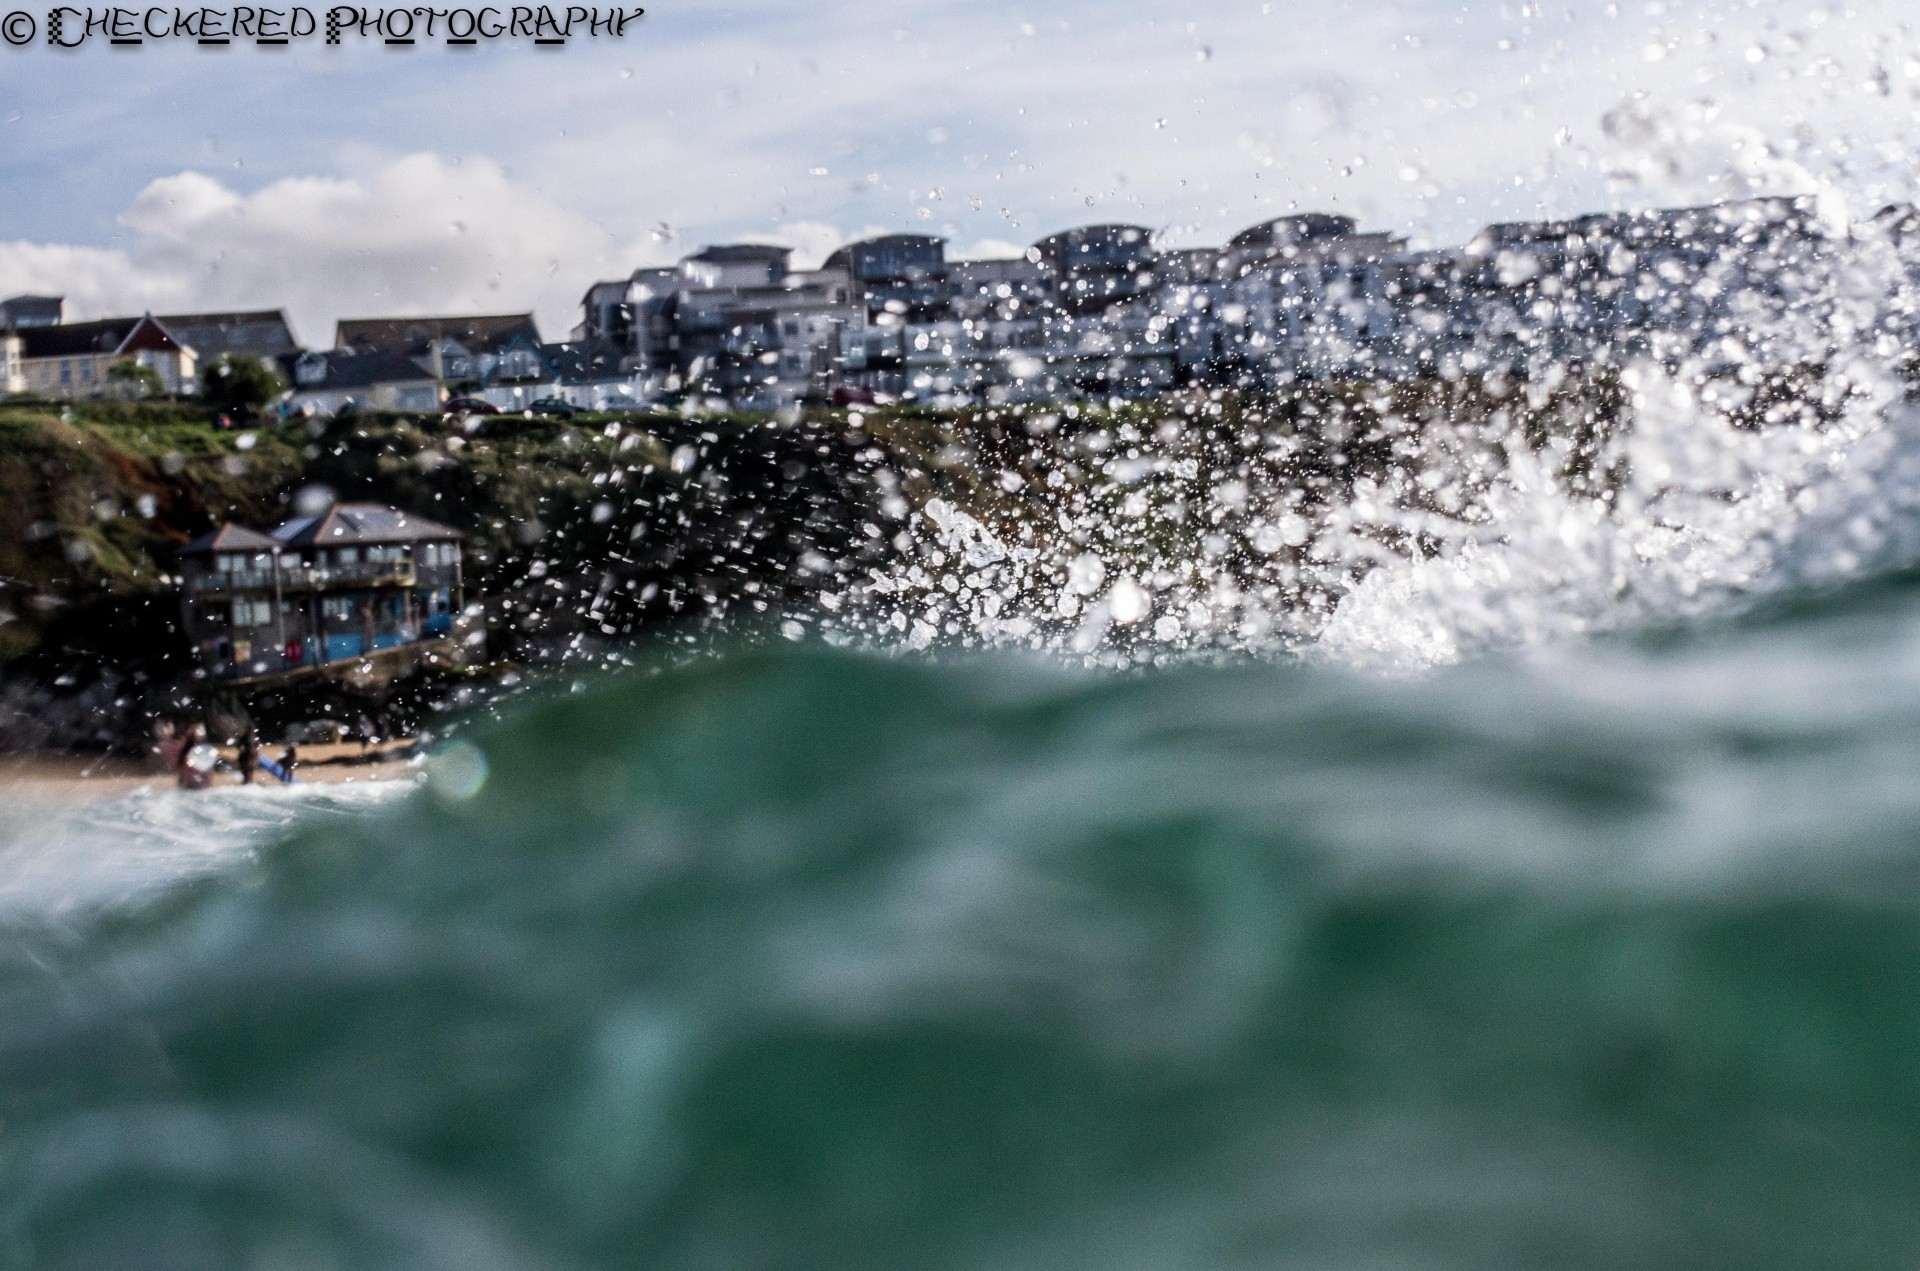 Checkered Photography's photo of Newquay - Fistral North